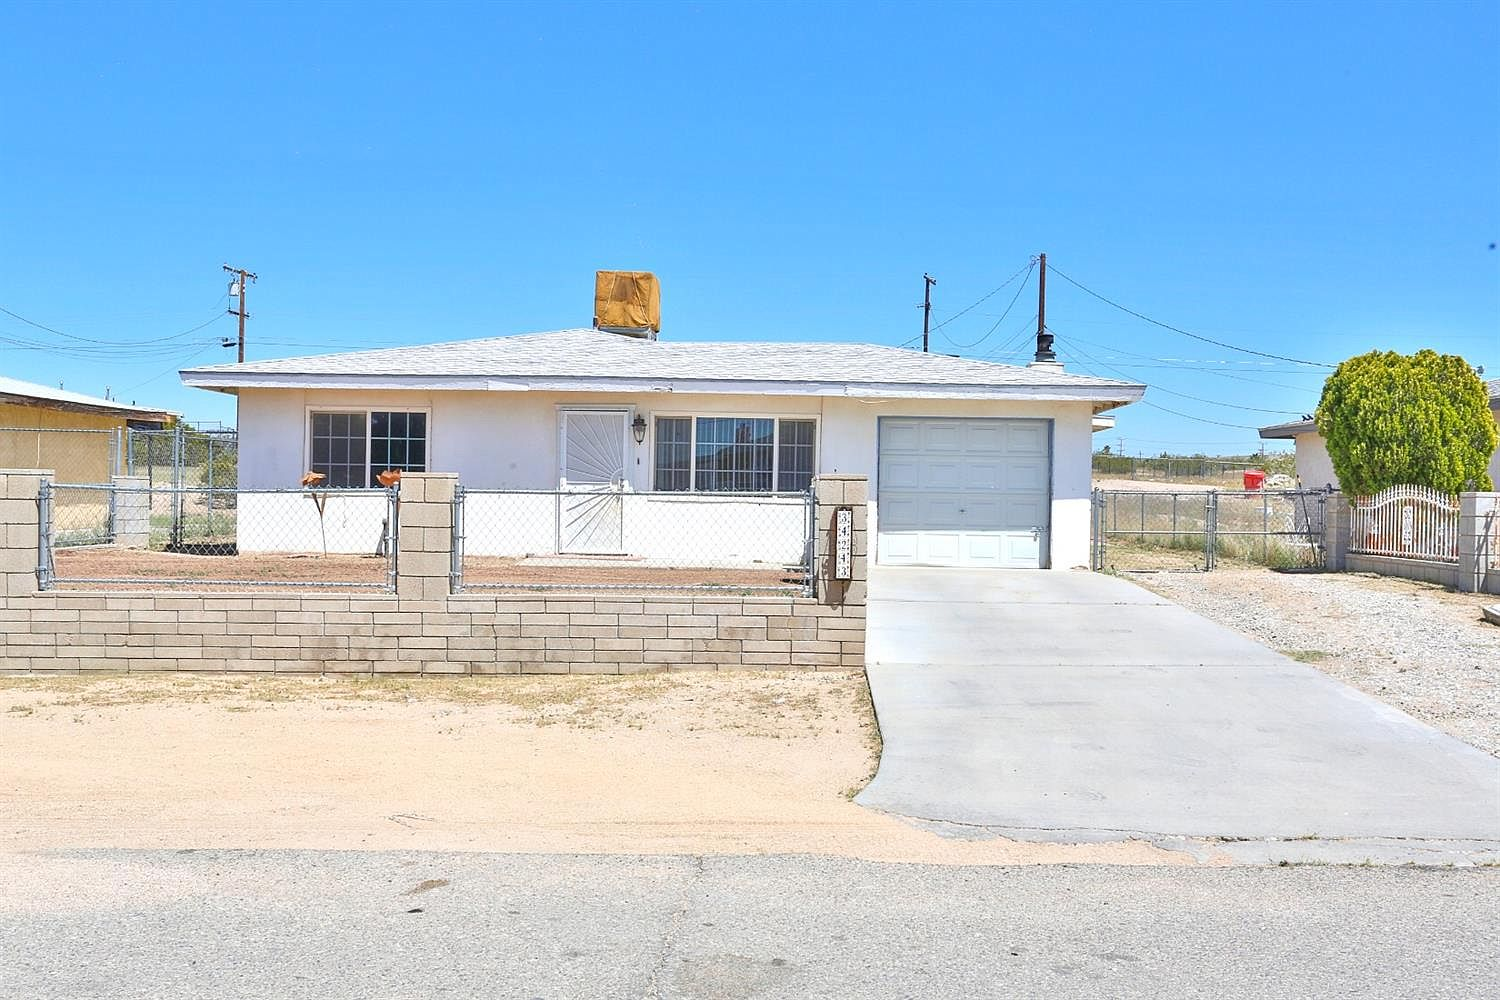 34243 Paris Ave Barstow Ca 92311 Zillow